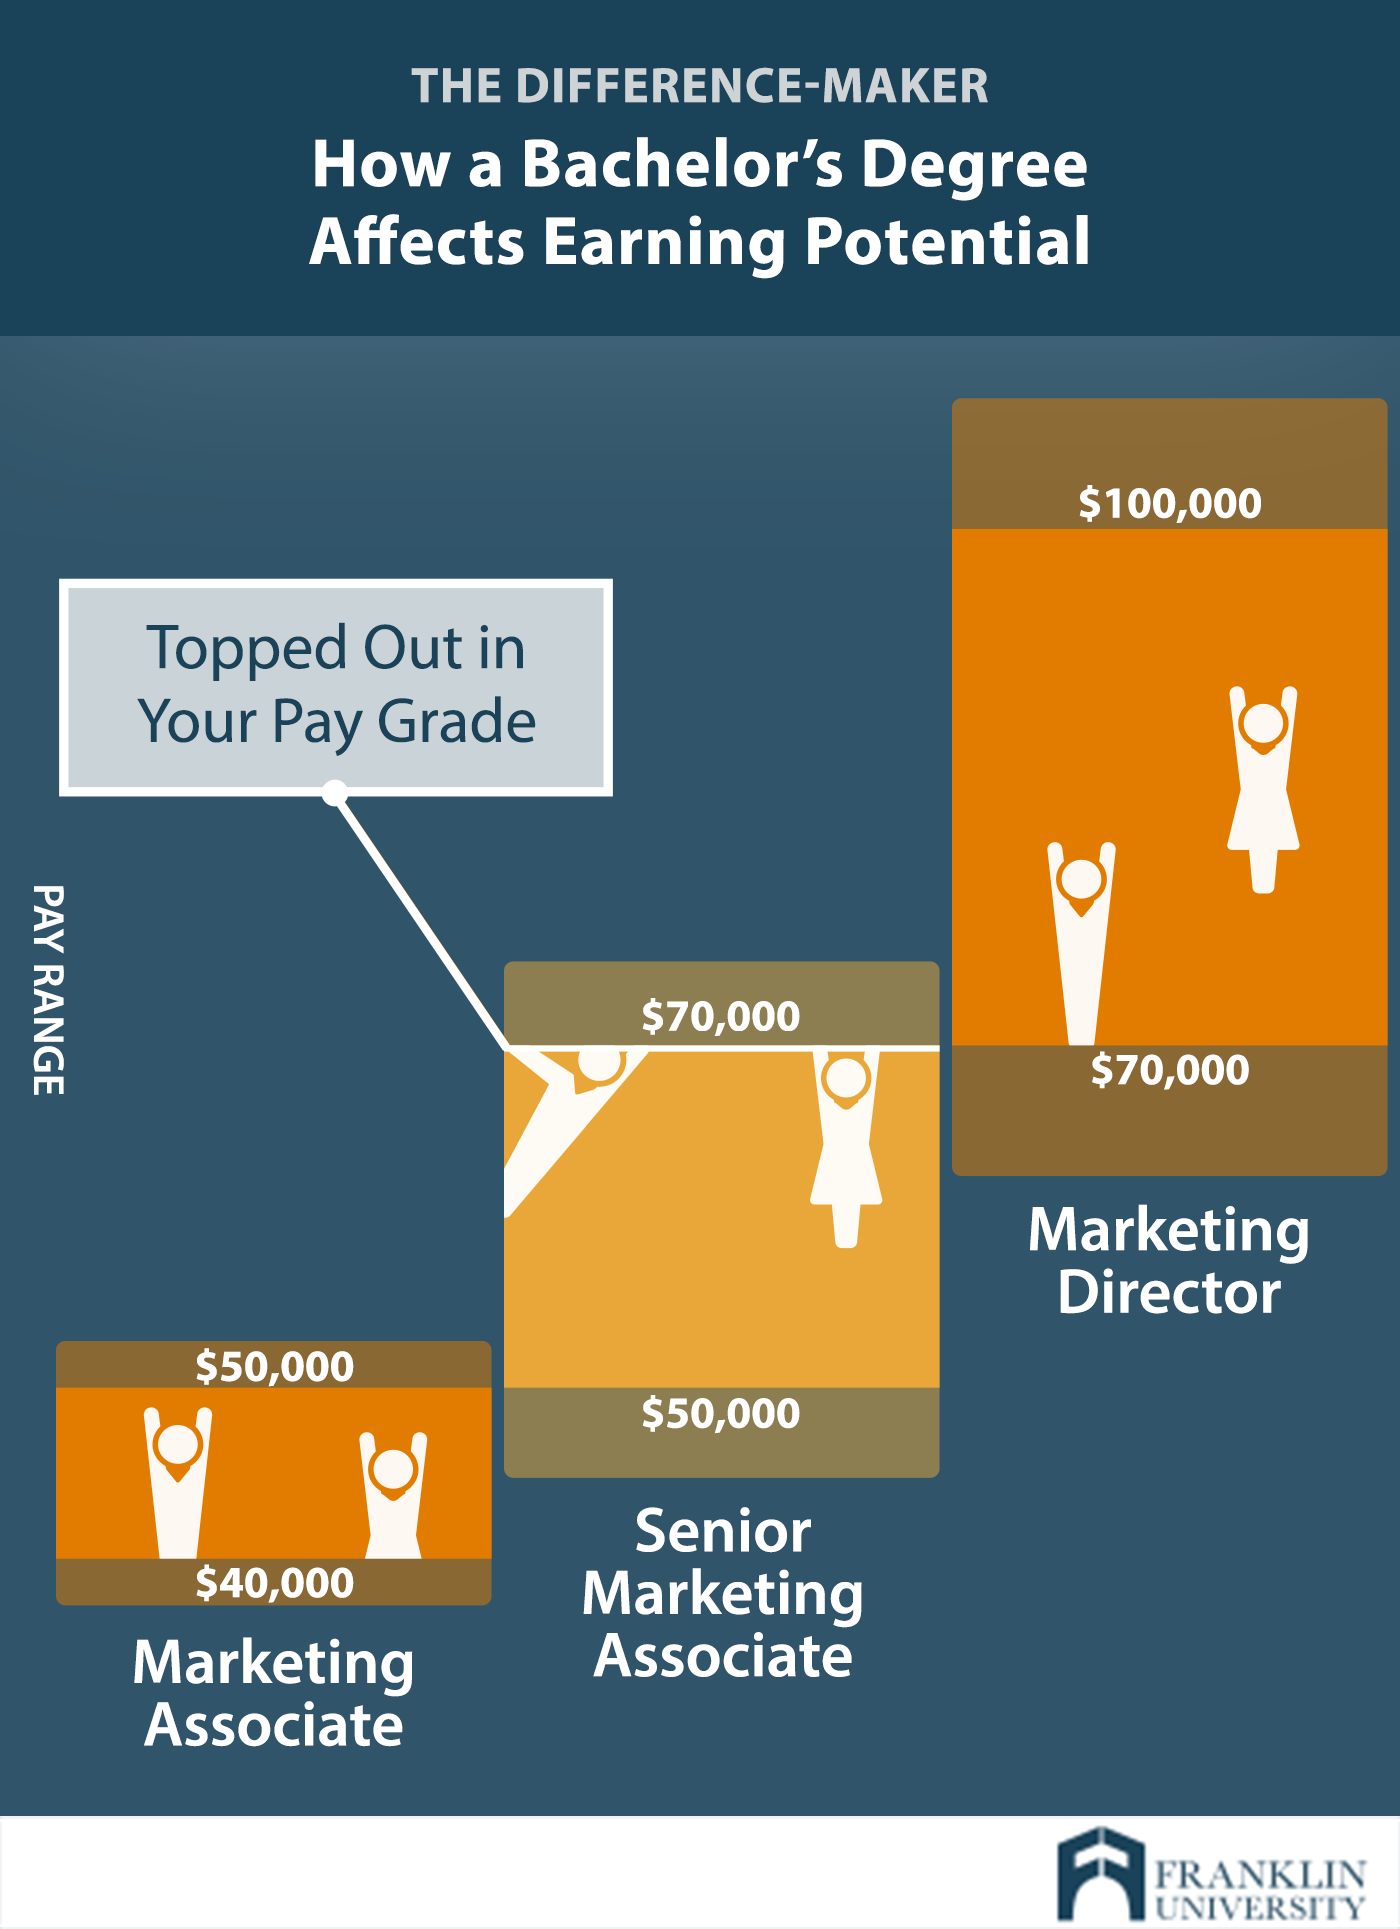 graphic describes how a bachelors degree affects earning potential